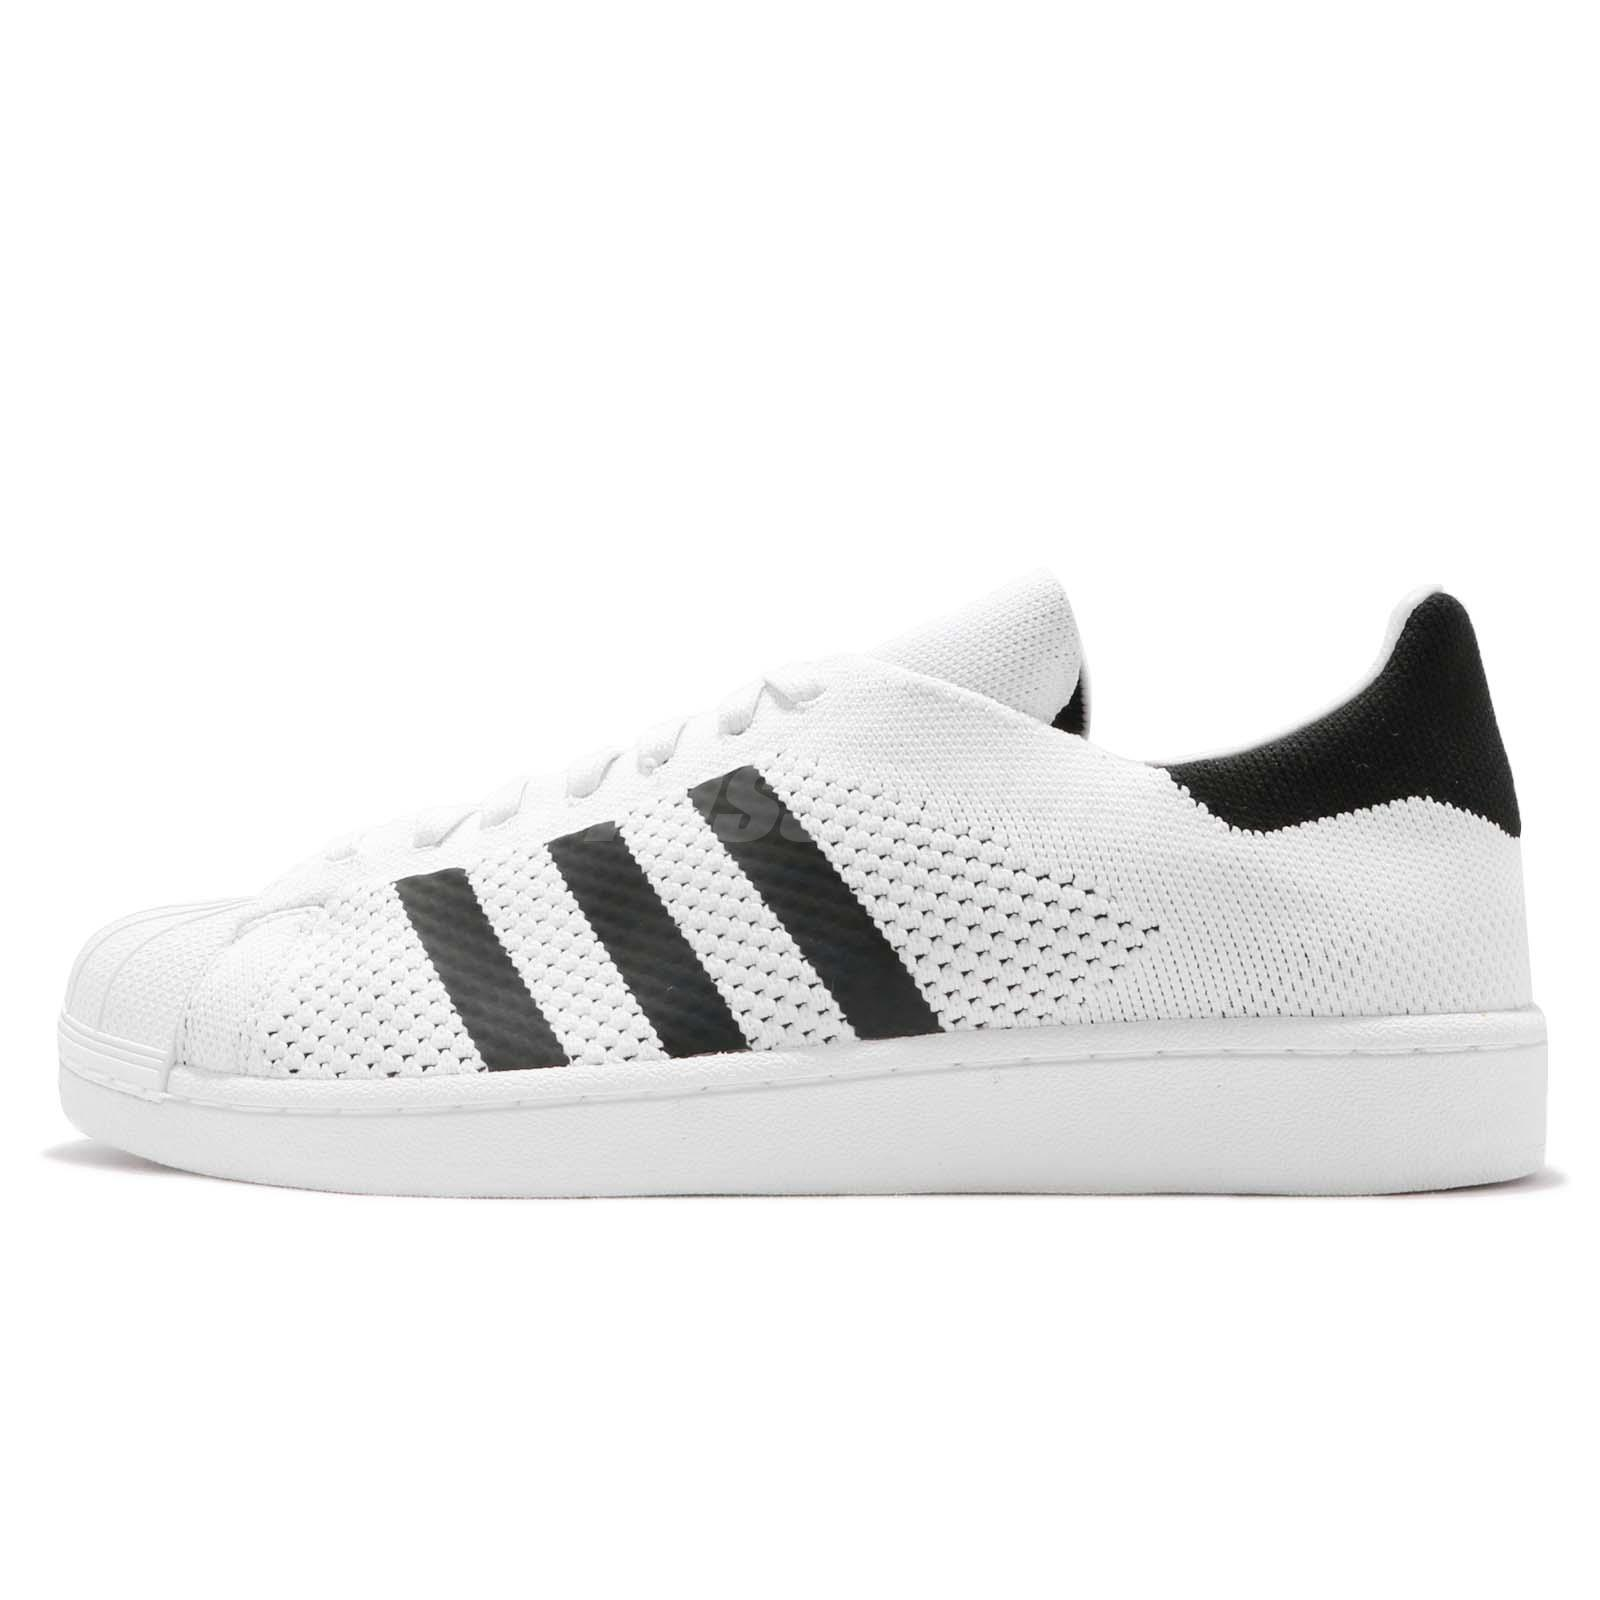 the latest e3db4 6d72b adidas Originals Superstar PK PrimeKnit White Black Men Casual Shoes BY8704